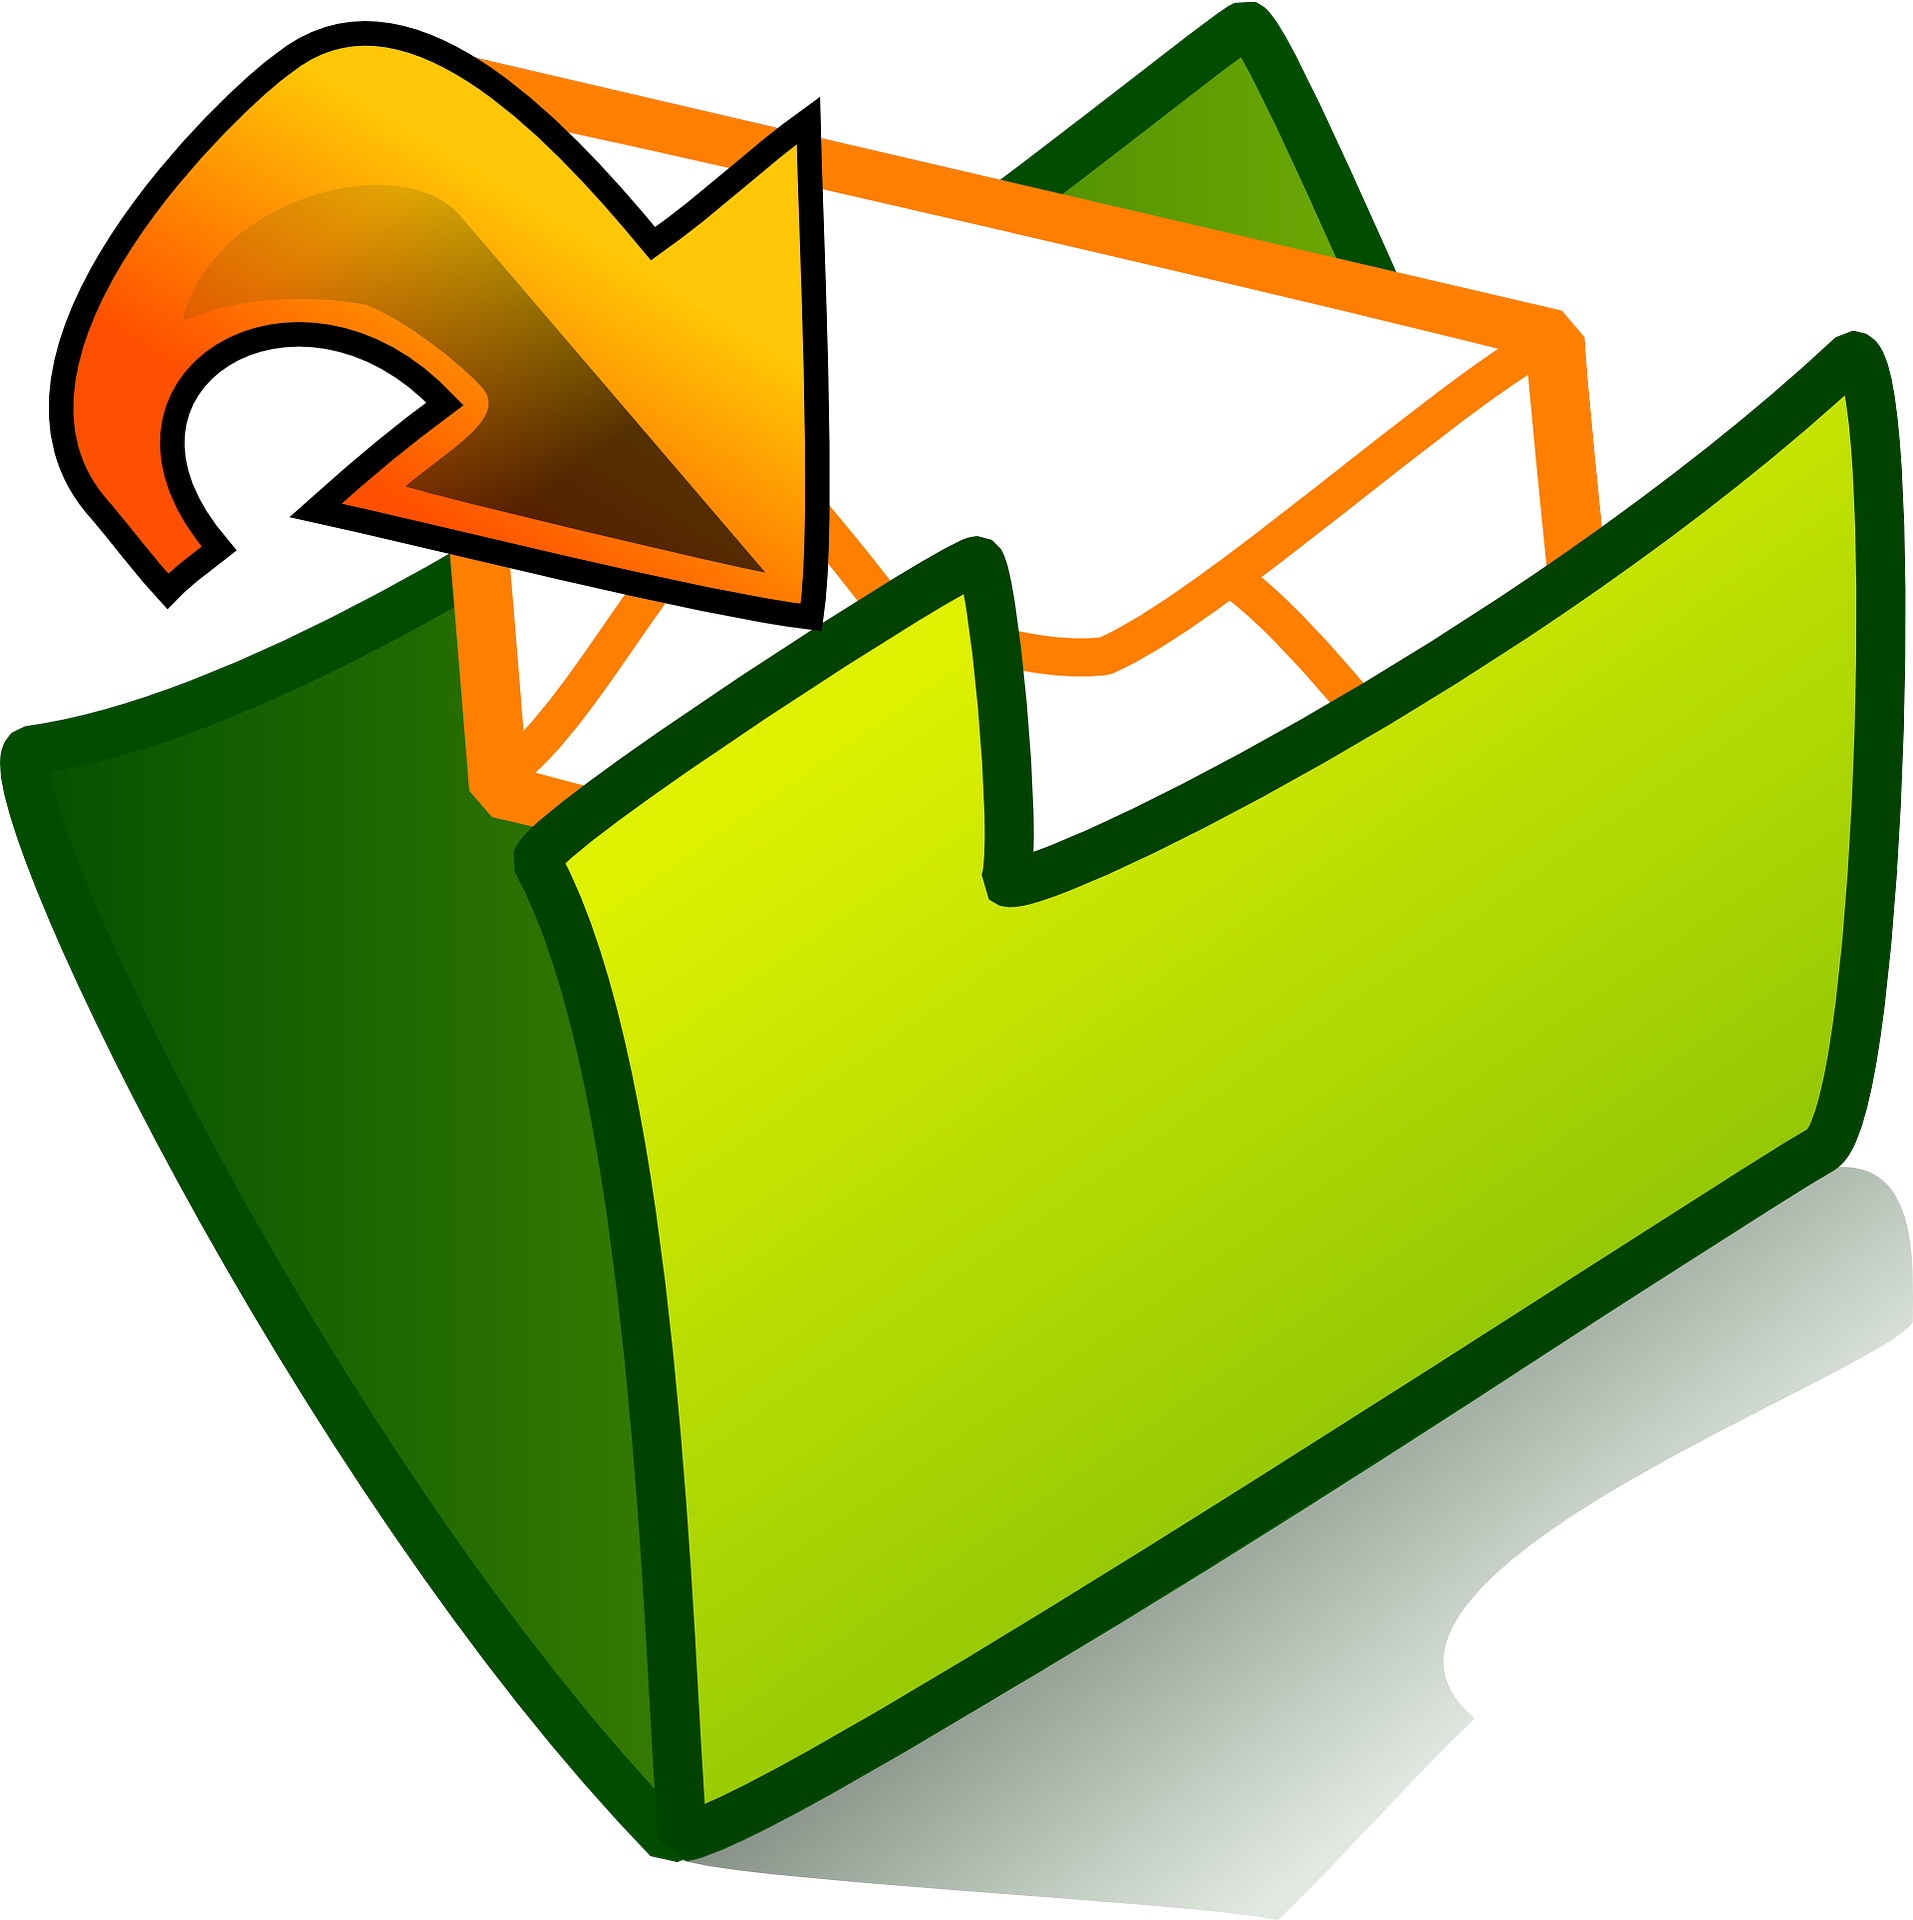 Mail clipart junk mail. Tame your email inbox